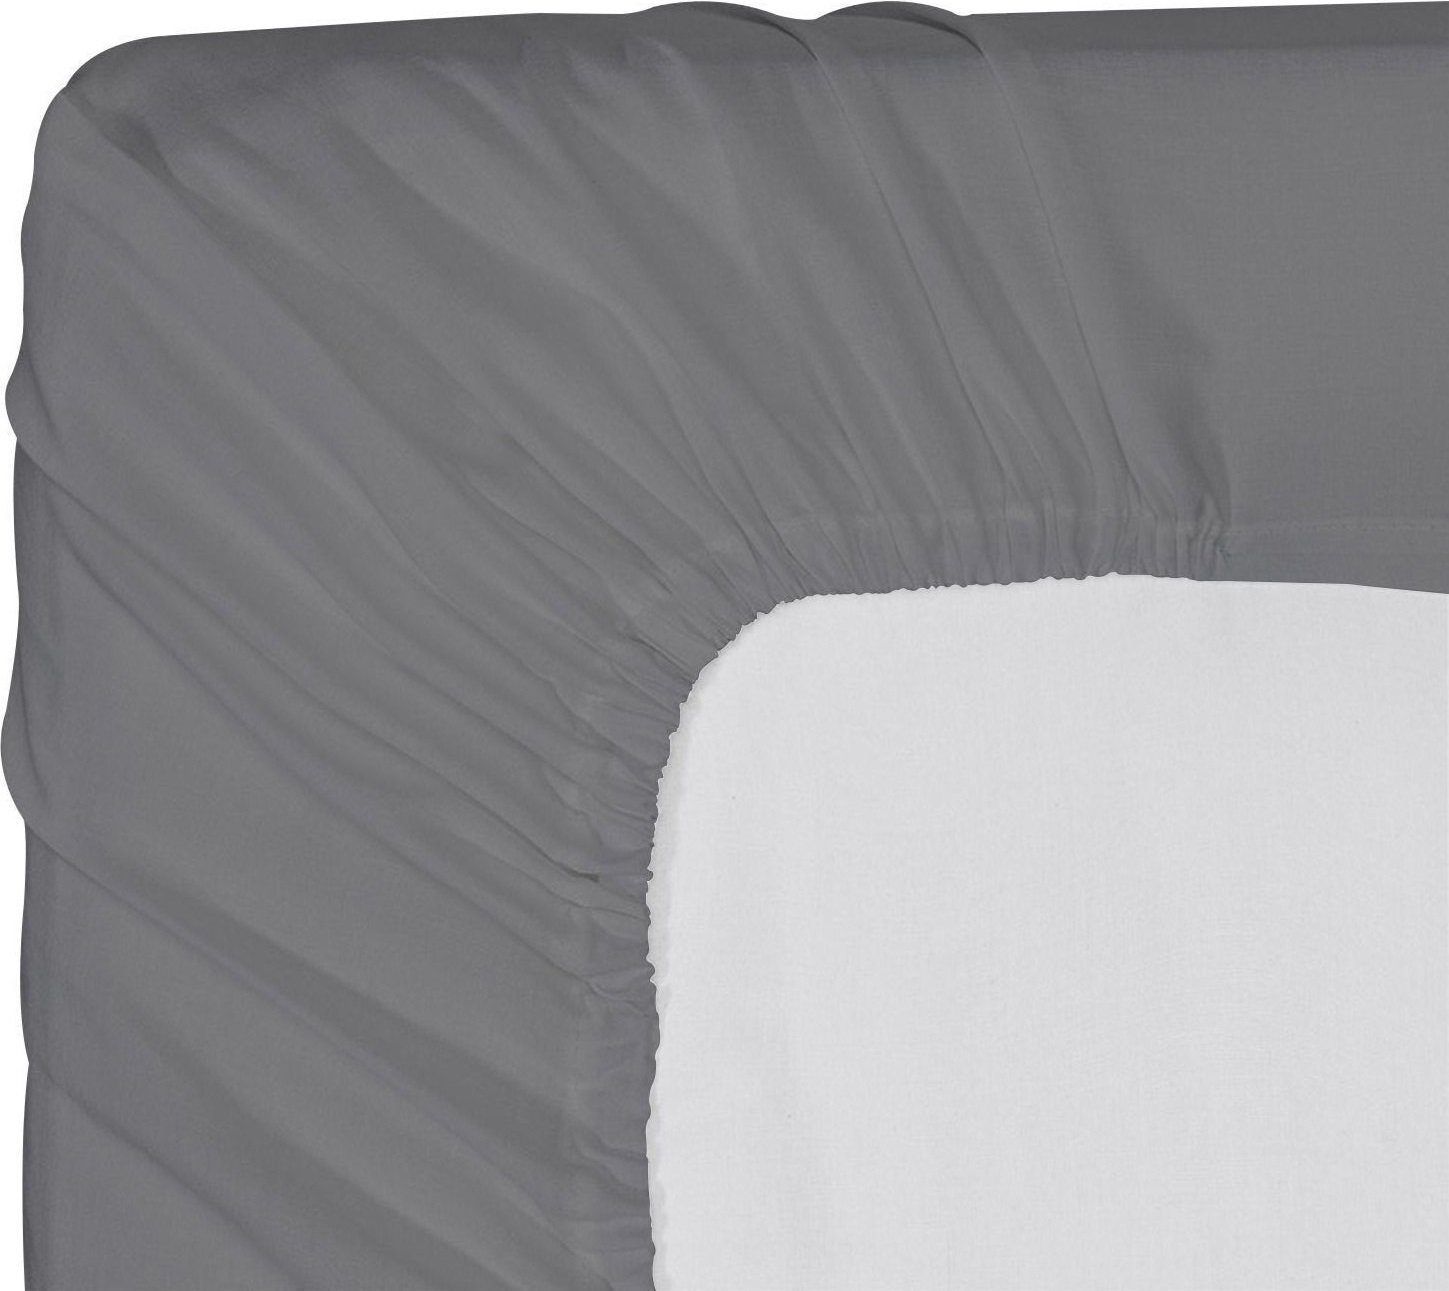 Utopia Bedding Premium Cotton Fitted Sheet Thread Count 300 (Twin, Grey) – 100% Combed Cotton Sateen - Super Soft Mercerized Fabric - Machine Washable UB925